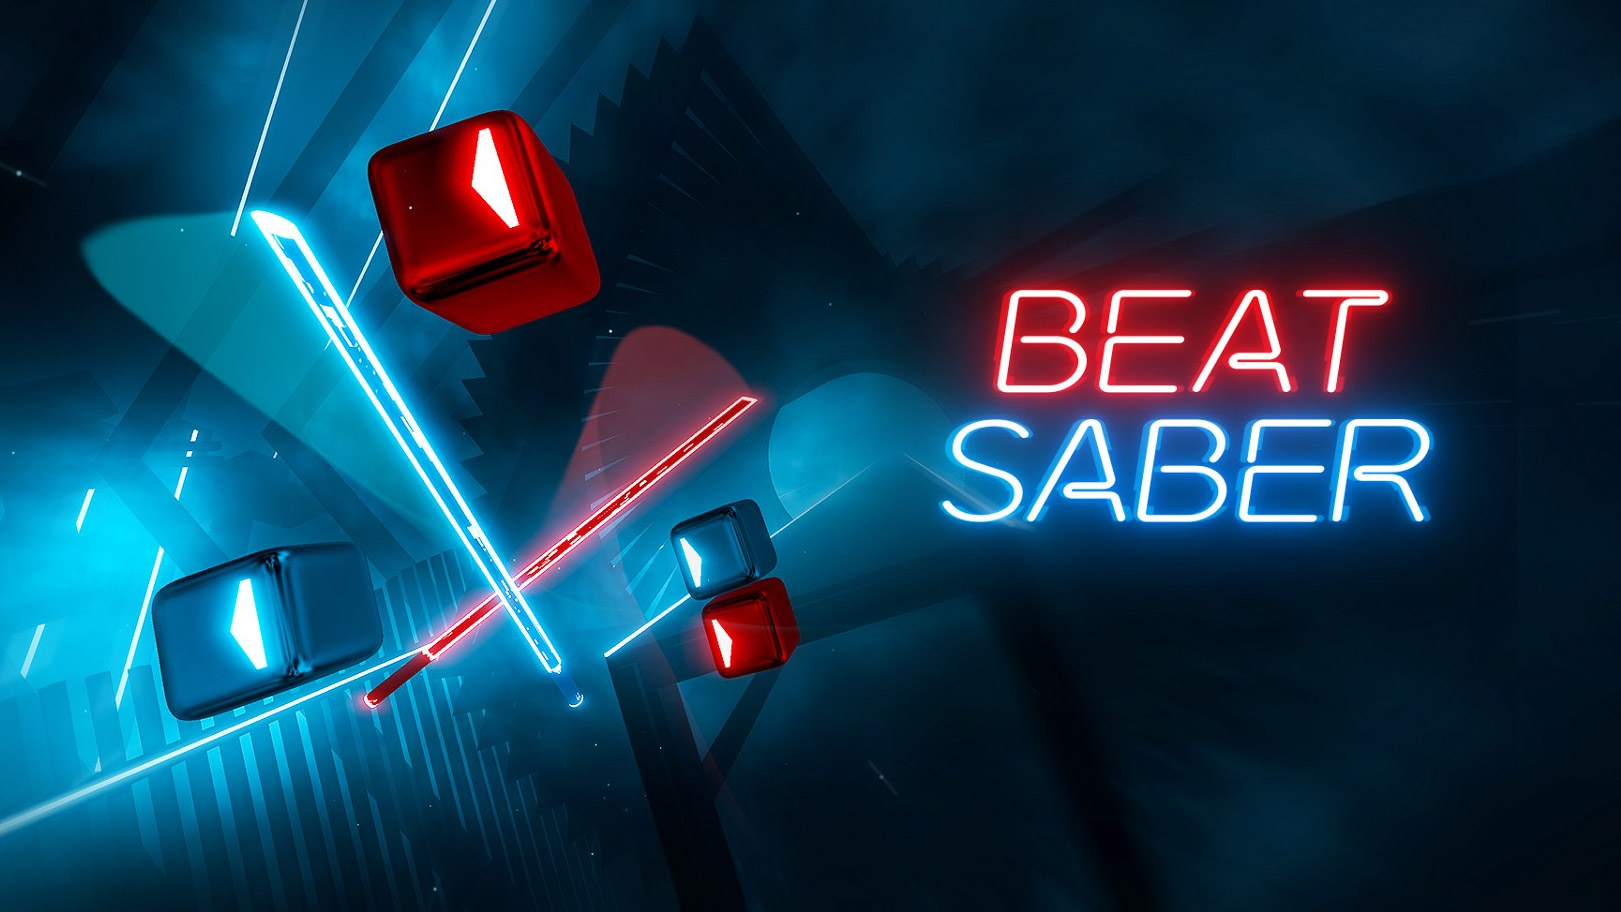 Update] ModSaber is No More, New 'Beat Saber' Mod Solution